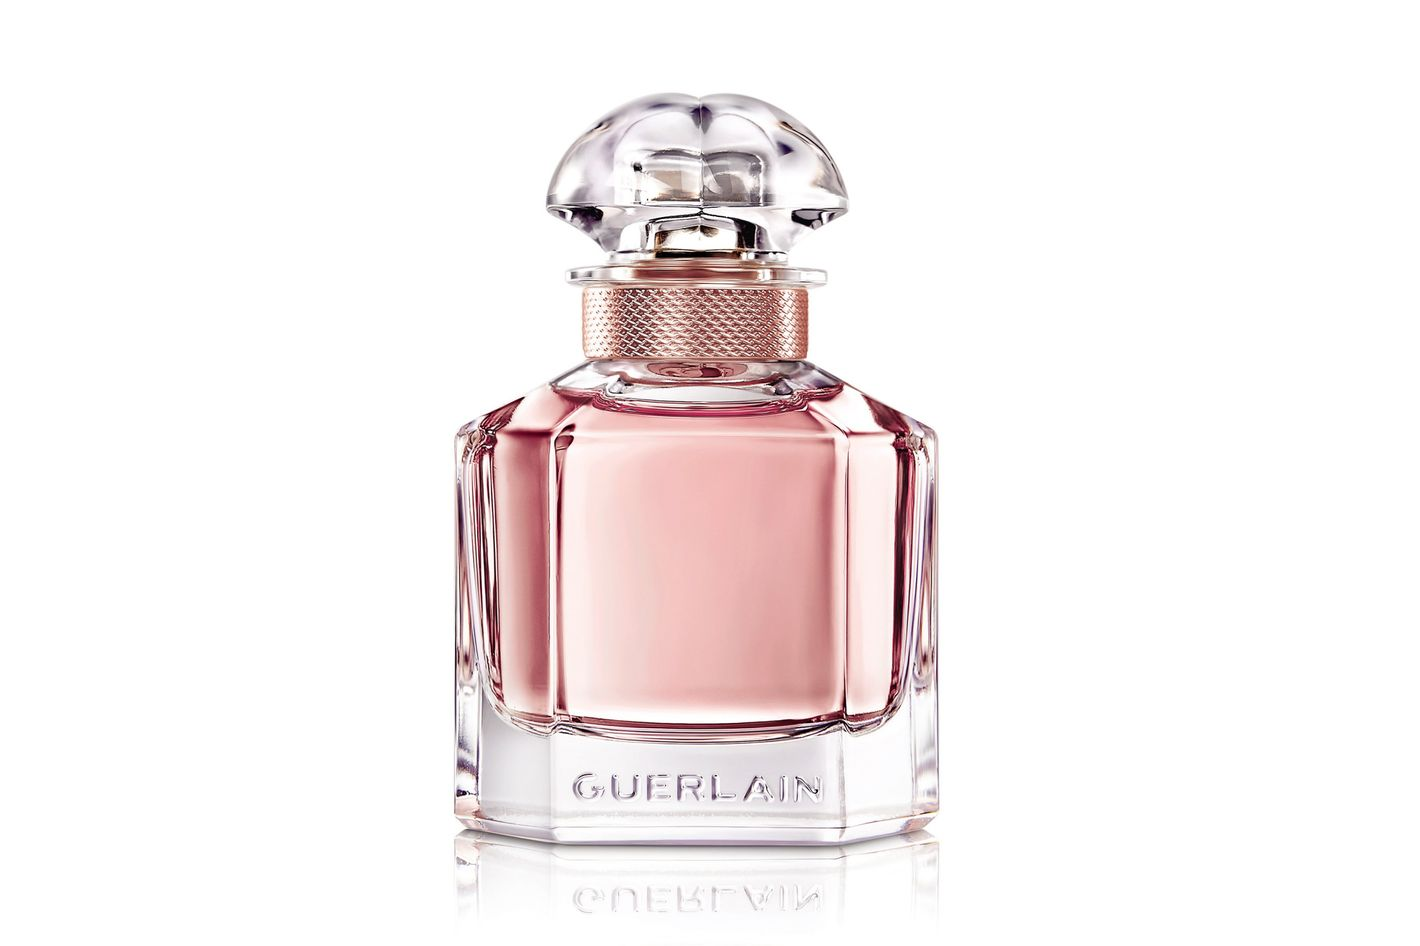 Guerlain Releases New Floral Version Of Mon Guerlain